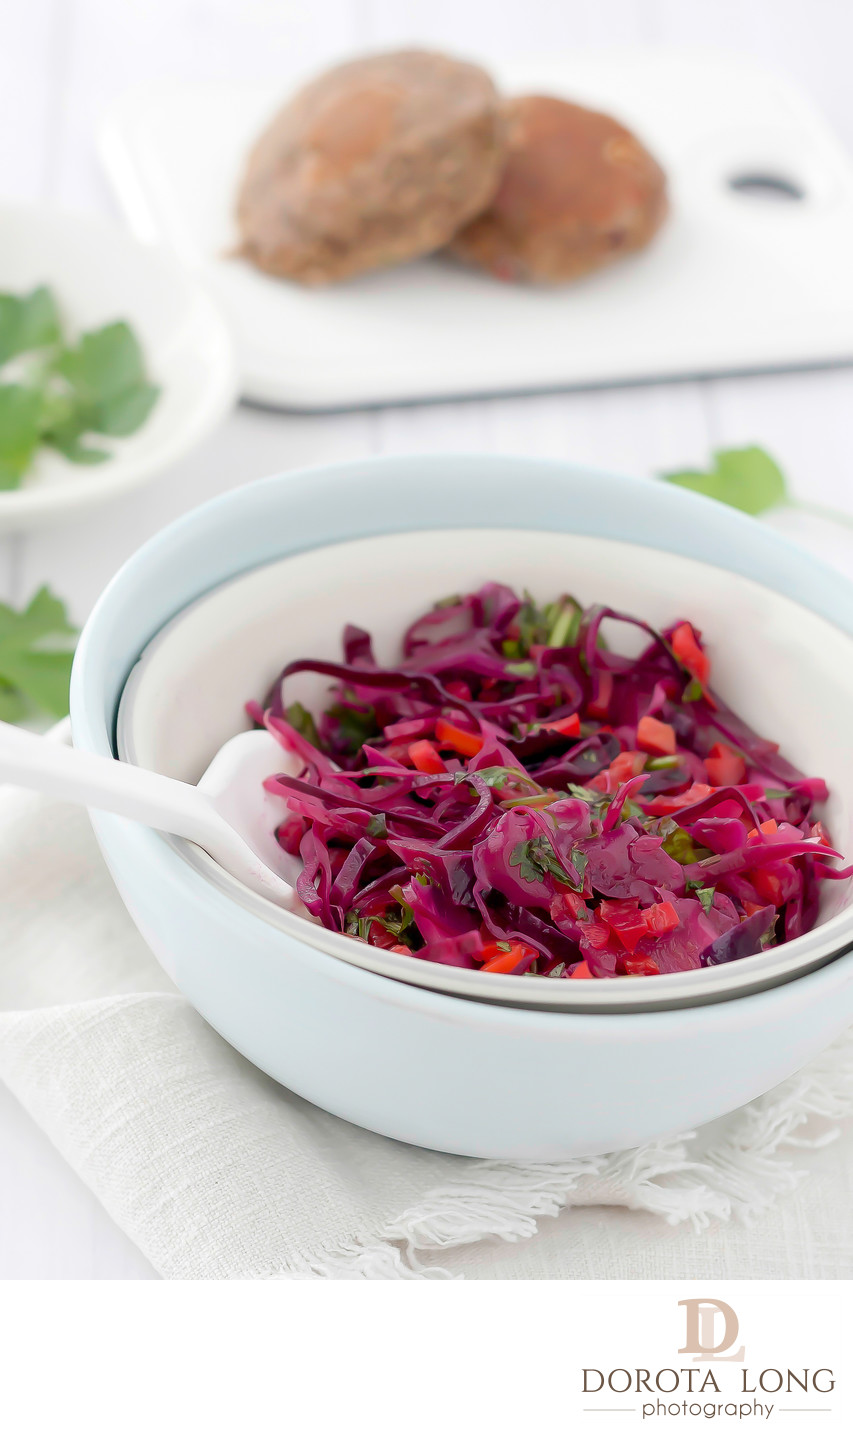 coleslaw made with red cabbage